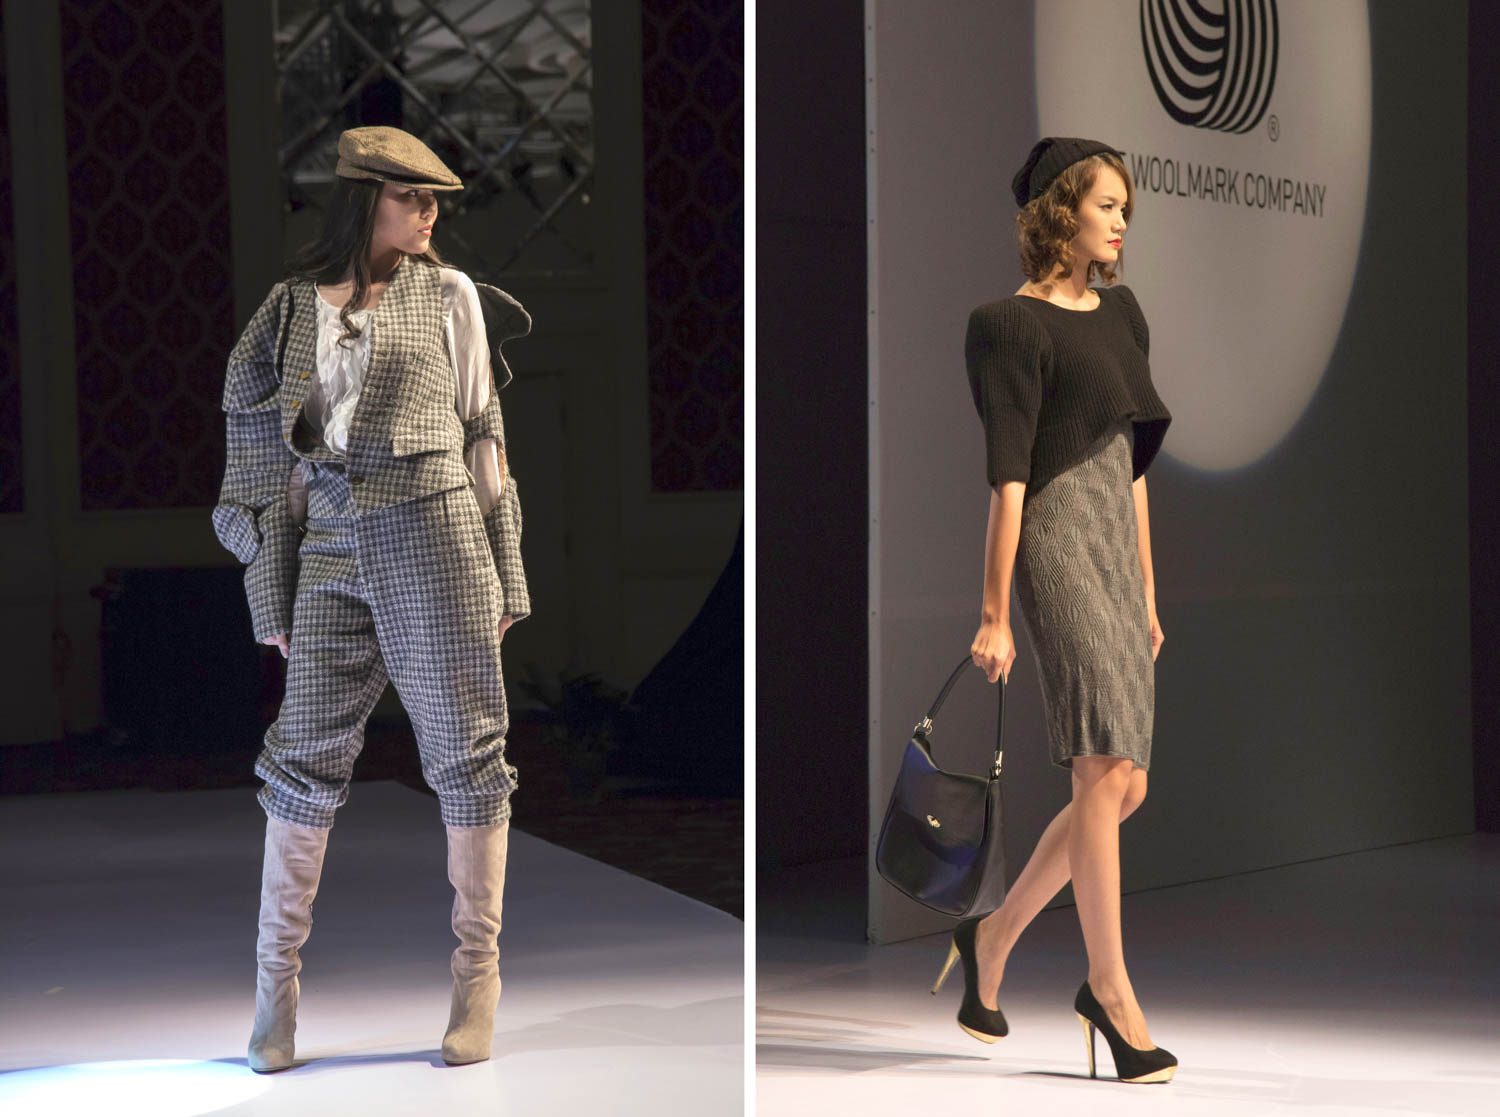 Catwalk at an event organized by The Woolmark Company | Ho Chi Minh Event Photographer | Francis Roux